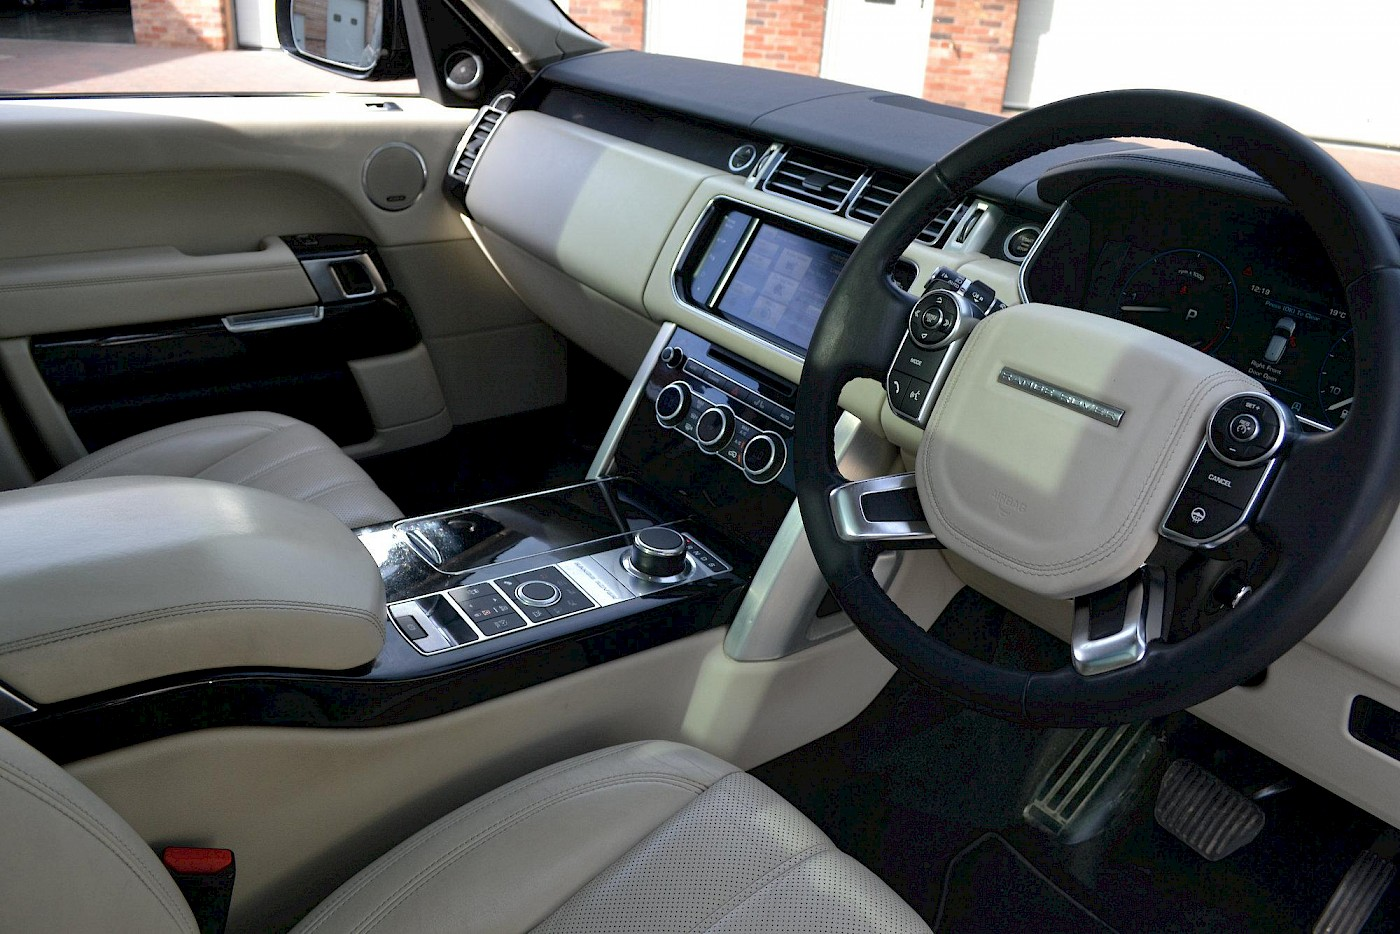 2013/13 Land Rover Range Rover Vogue 4.4 16